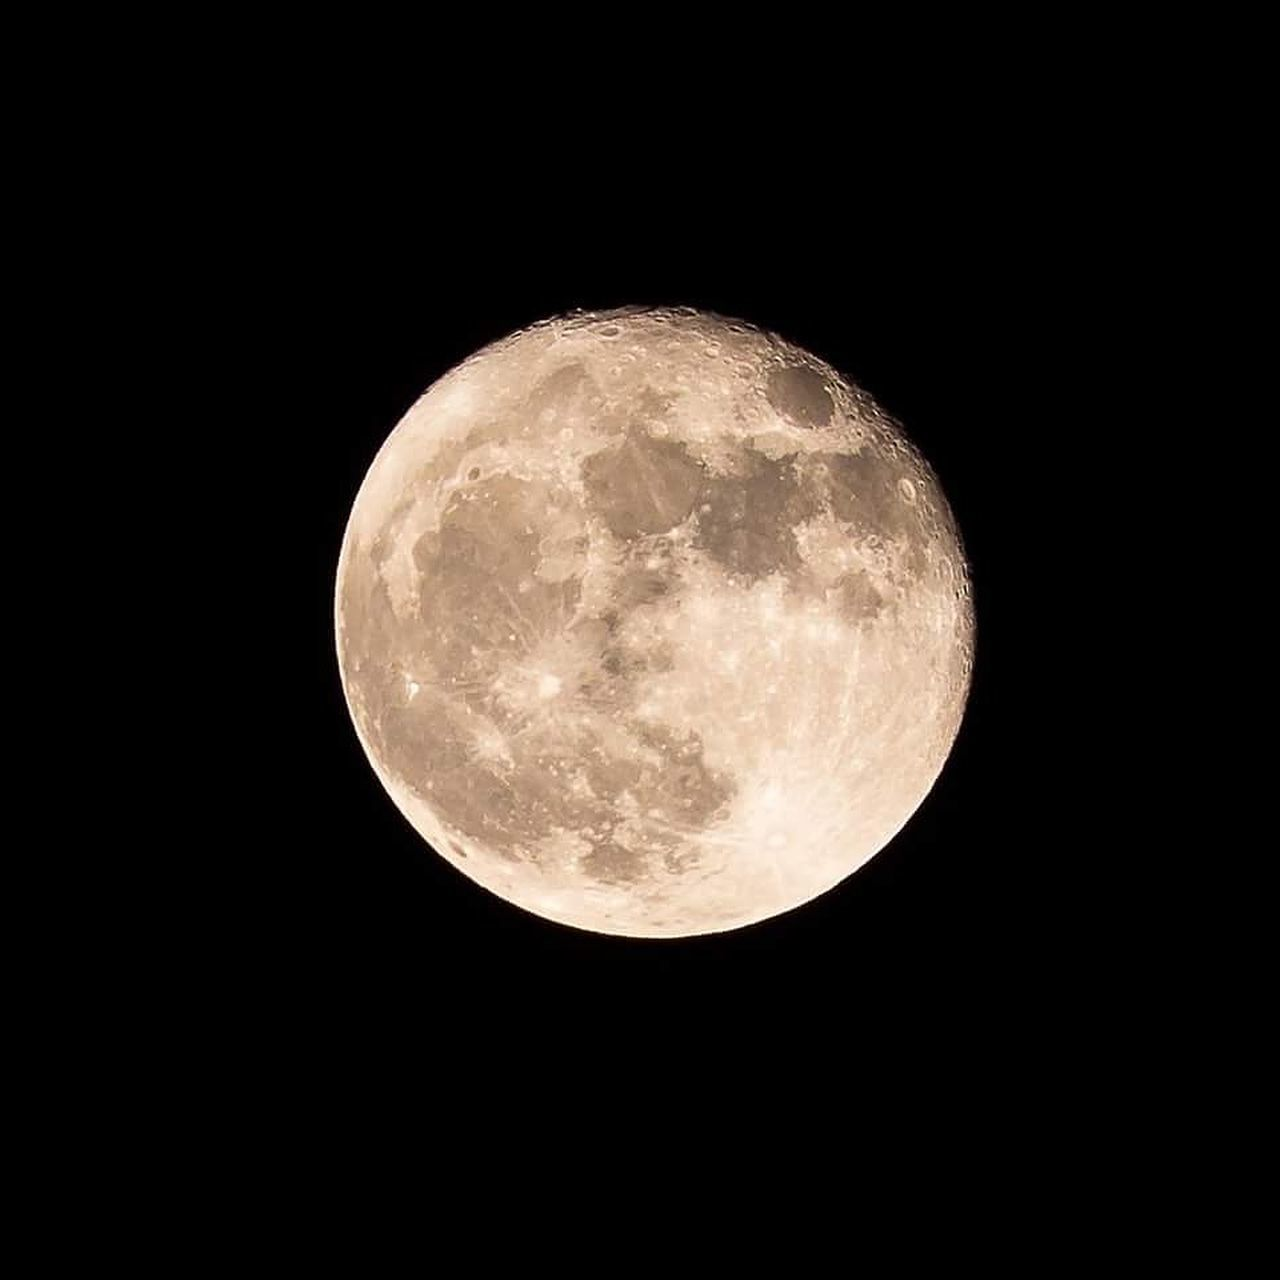 night, moon, astronomy, full moon, moon surface, majestic, planetary moon, beauty in nature, nature, scenics, no people, space exploration, tranquility, low angle view, space, outdoors, moonlight, close-up, black background, clear sky, sky, satellite view